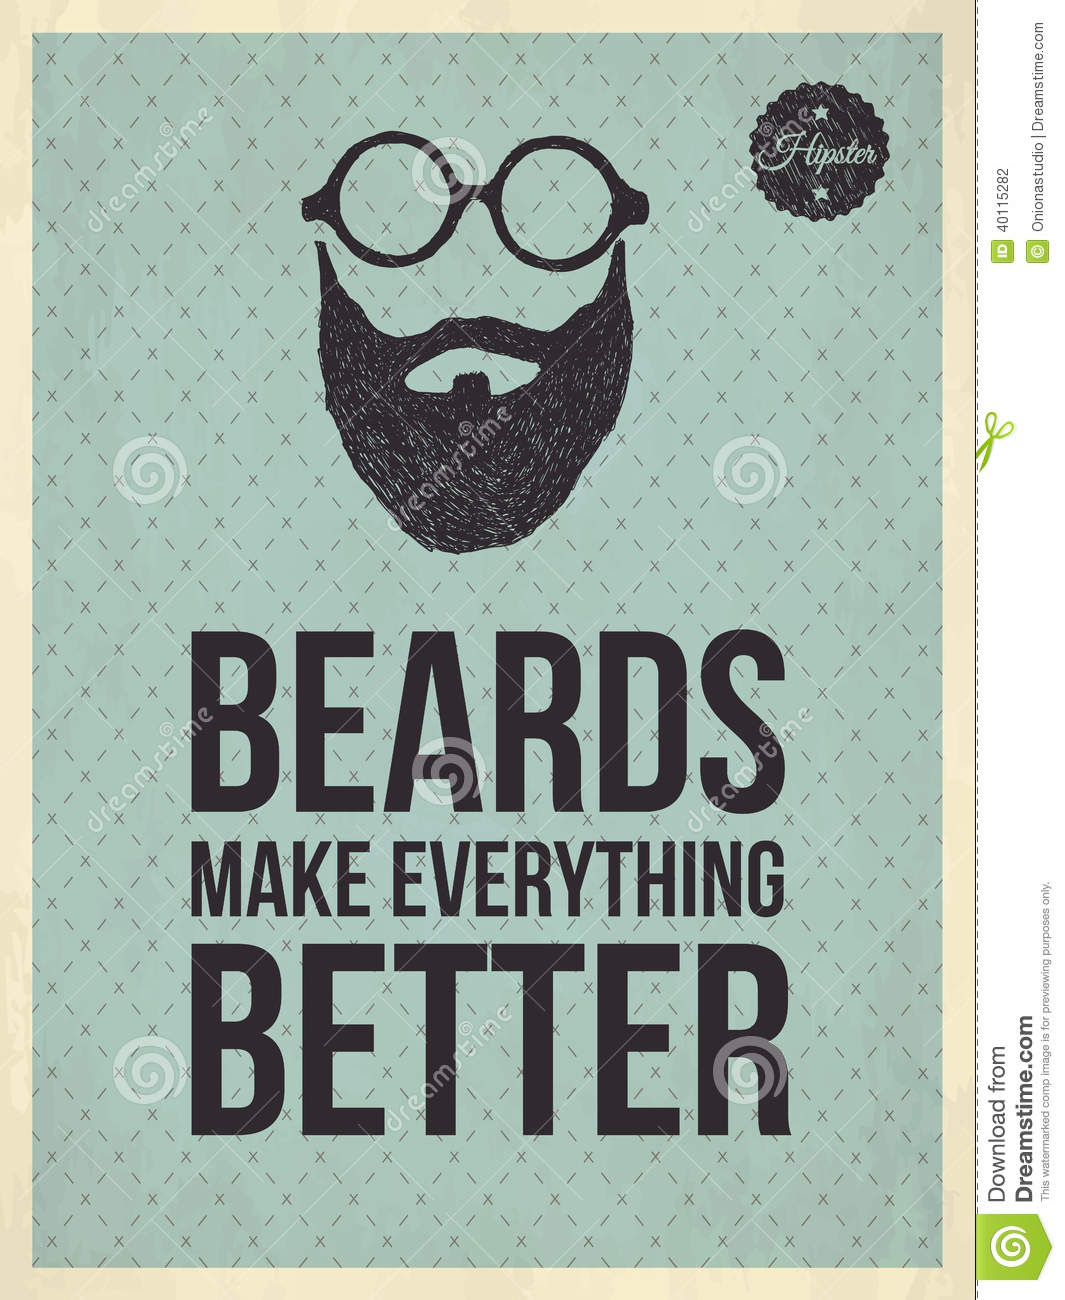 Hipster Quotes: Beards Make Everything Better Stock Vector